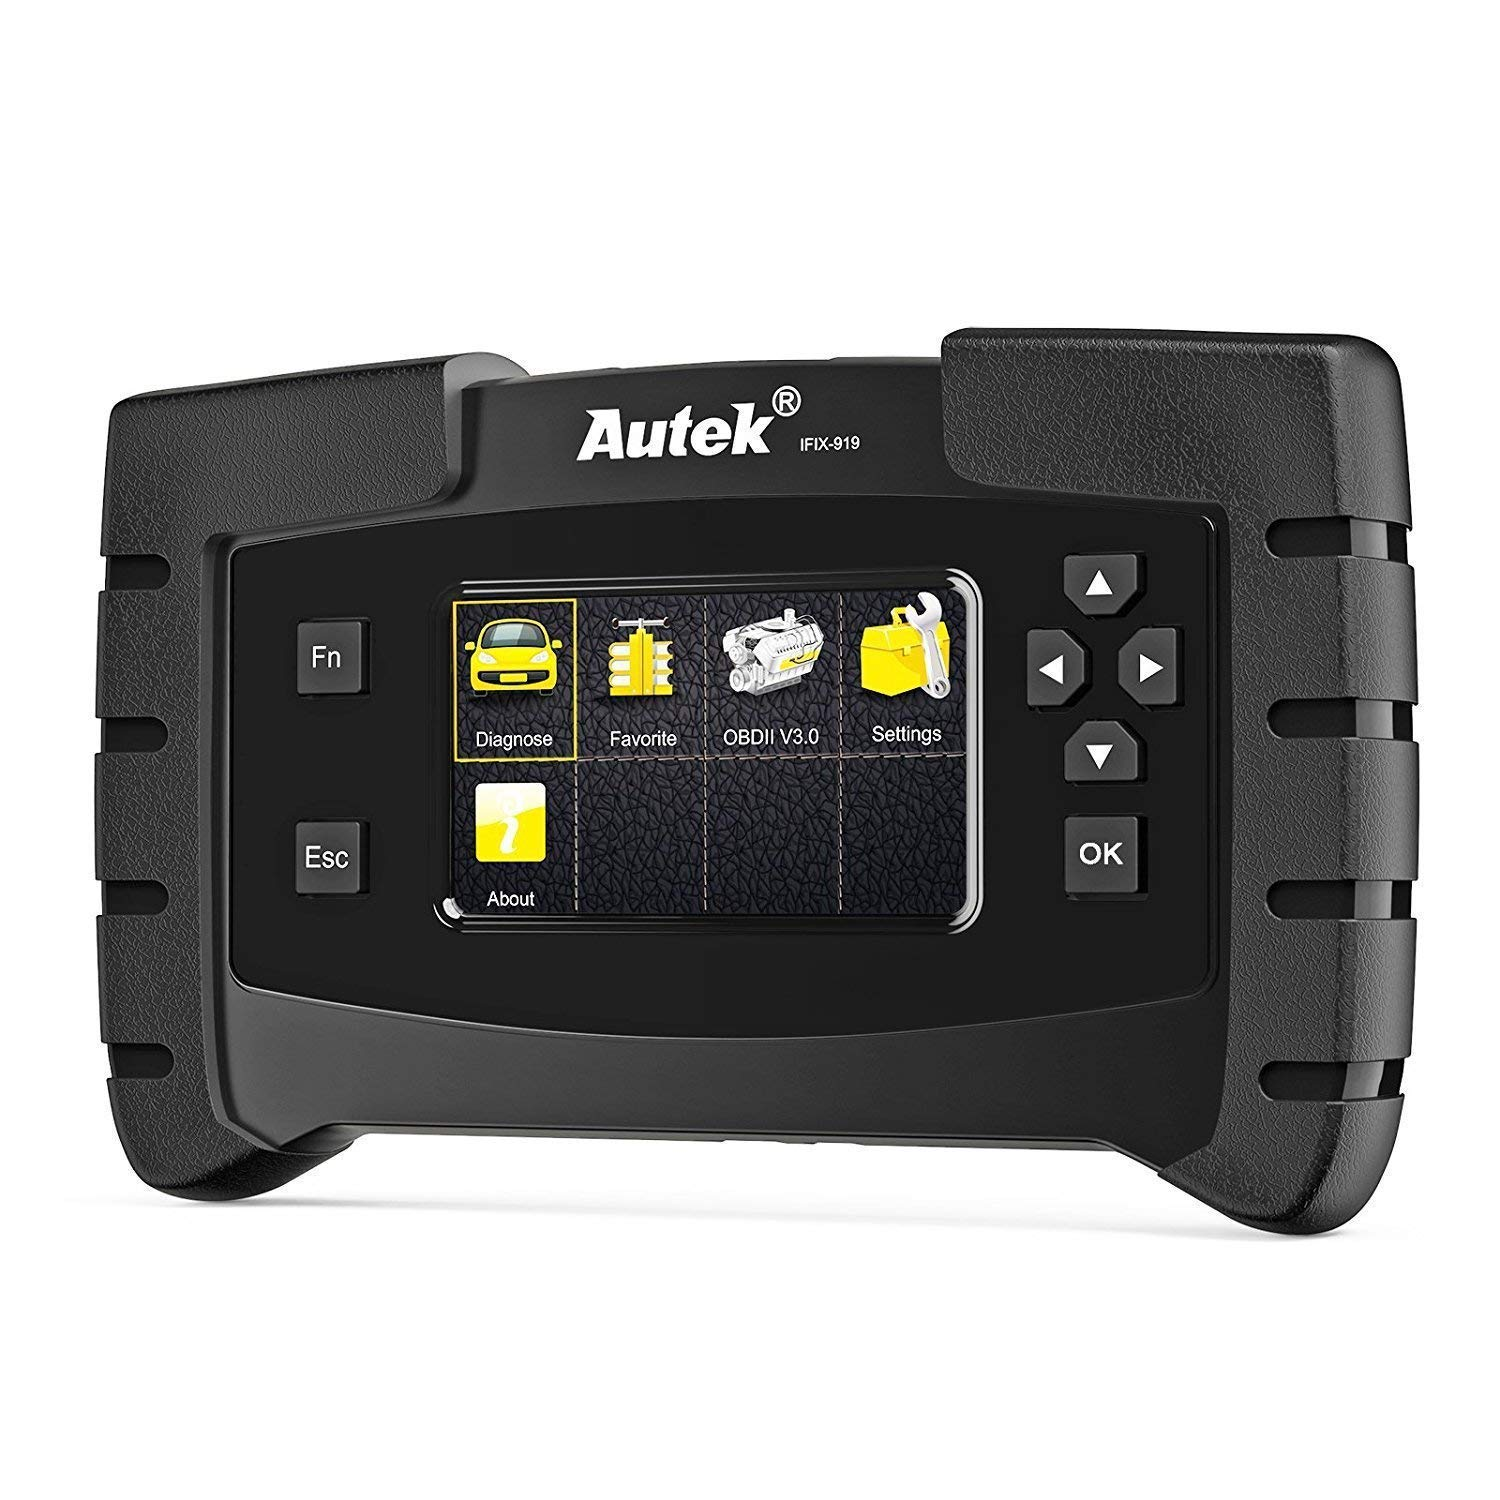 Autek Code Reader IFIX919 Automotive Car Code Reader Vehicles OBD2 Scanner Diagnostic Scan Tools Diesel with All System for ABS EPB SAS EPS TPMS Airbag Transmission Check Engine Oil Reset